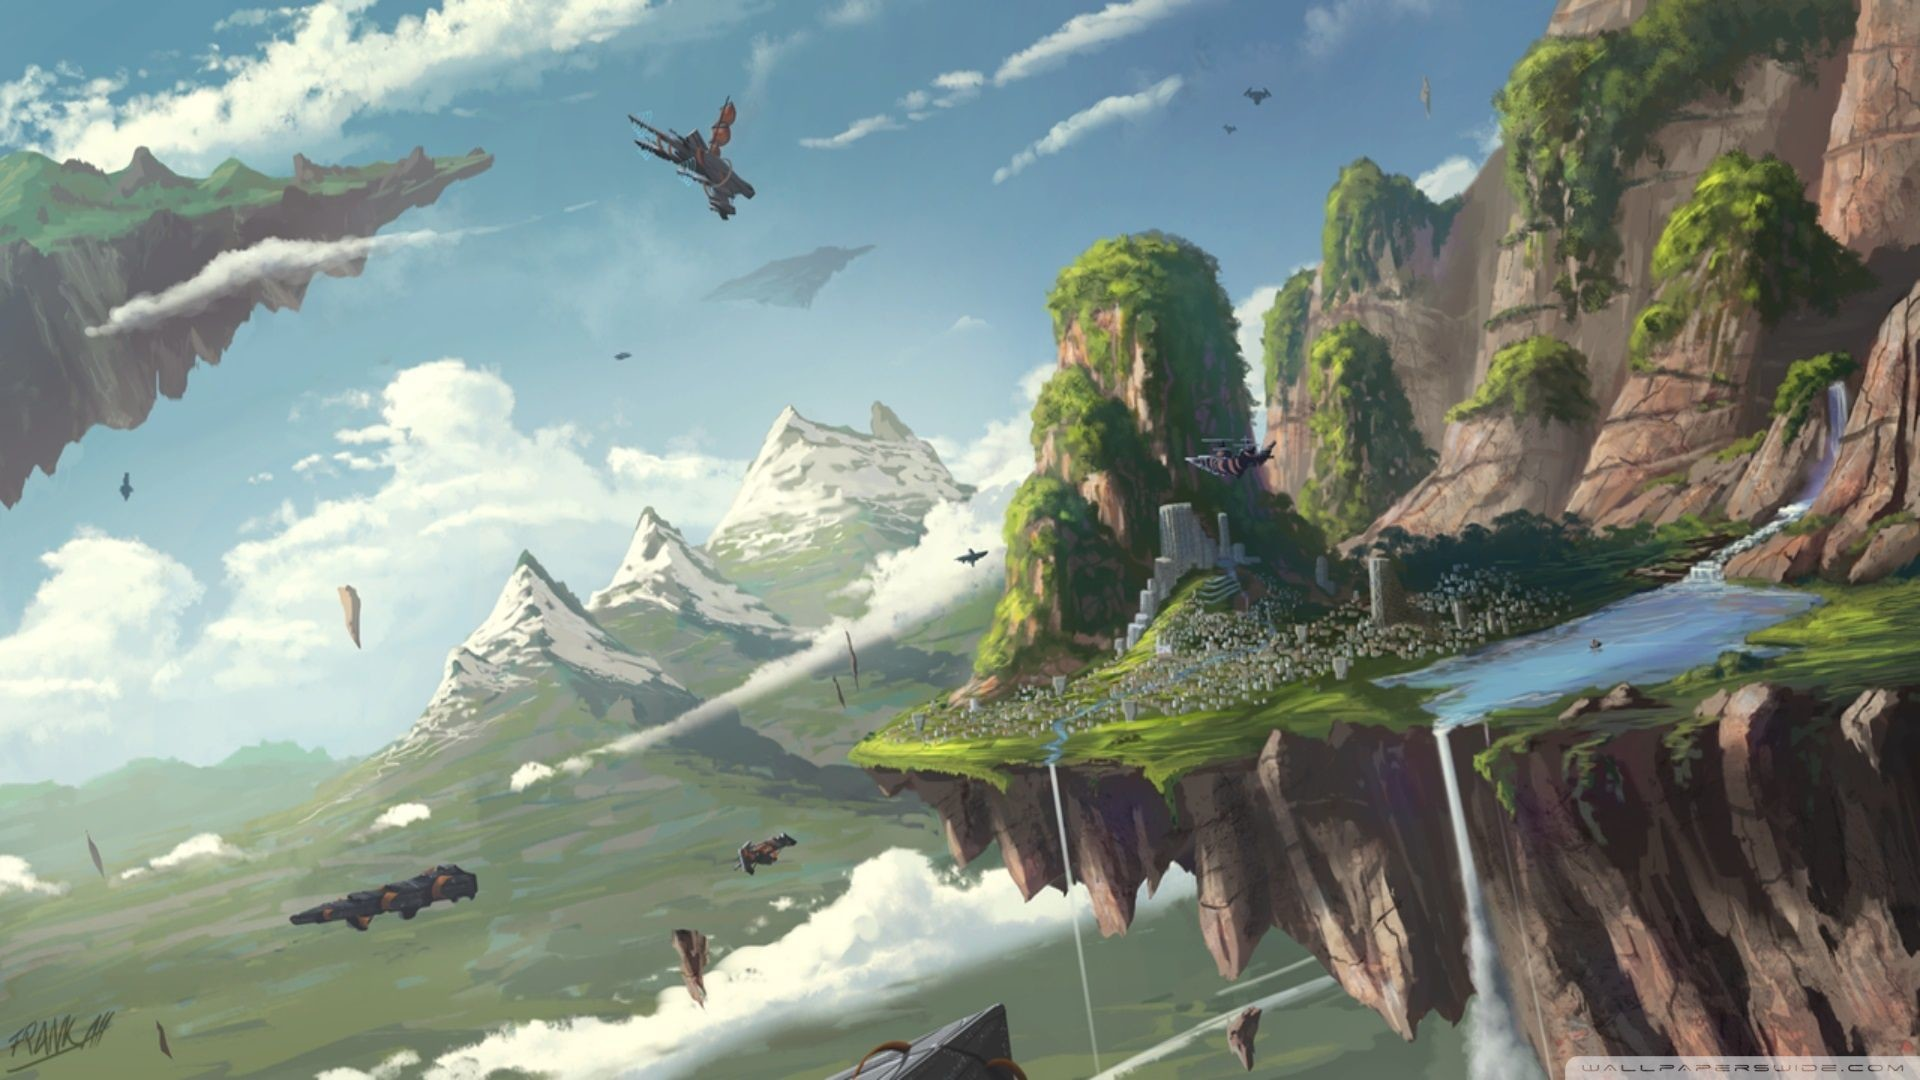 Floating Island Clouds Sky Fantasy World wallpaper creative and